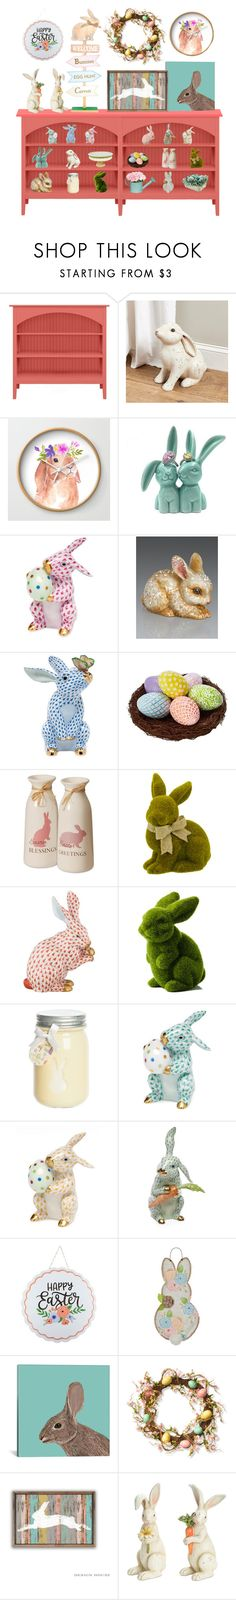 """""""Easter Vignette"""" by shannon-brennan ❤ liked on Polyvore featuring interior, interiors, interior design, home, home decor, interior decorating, Ballard Designs, Herend, Jay Strongwater and iCanvas"""